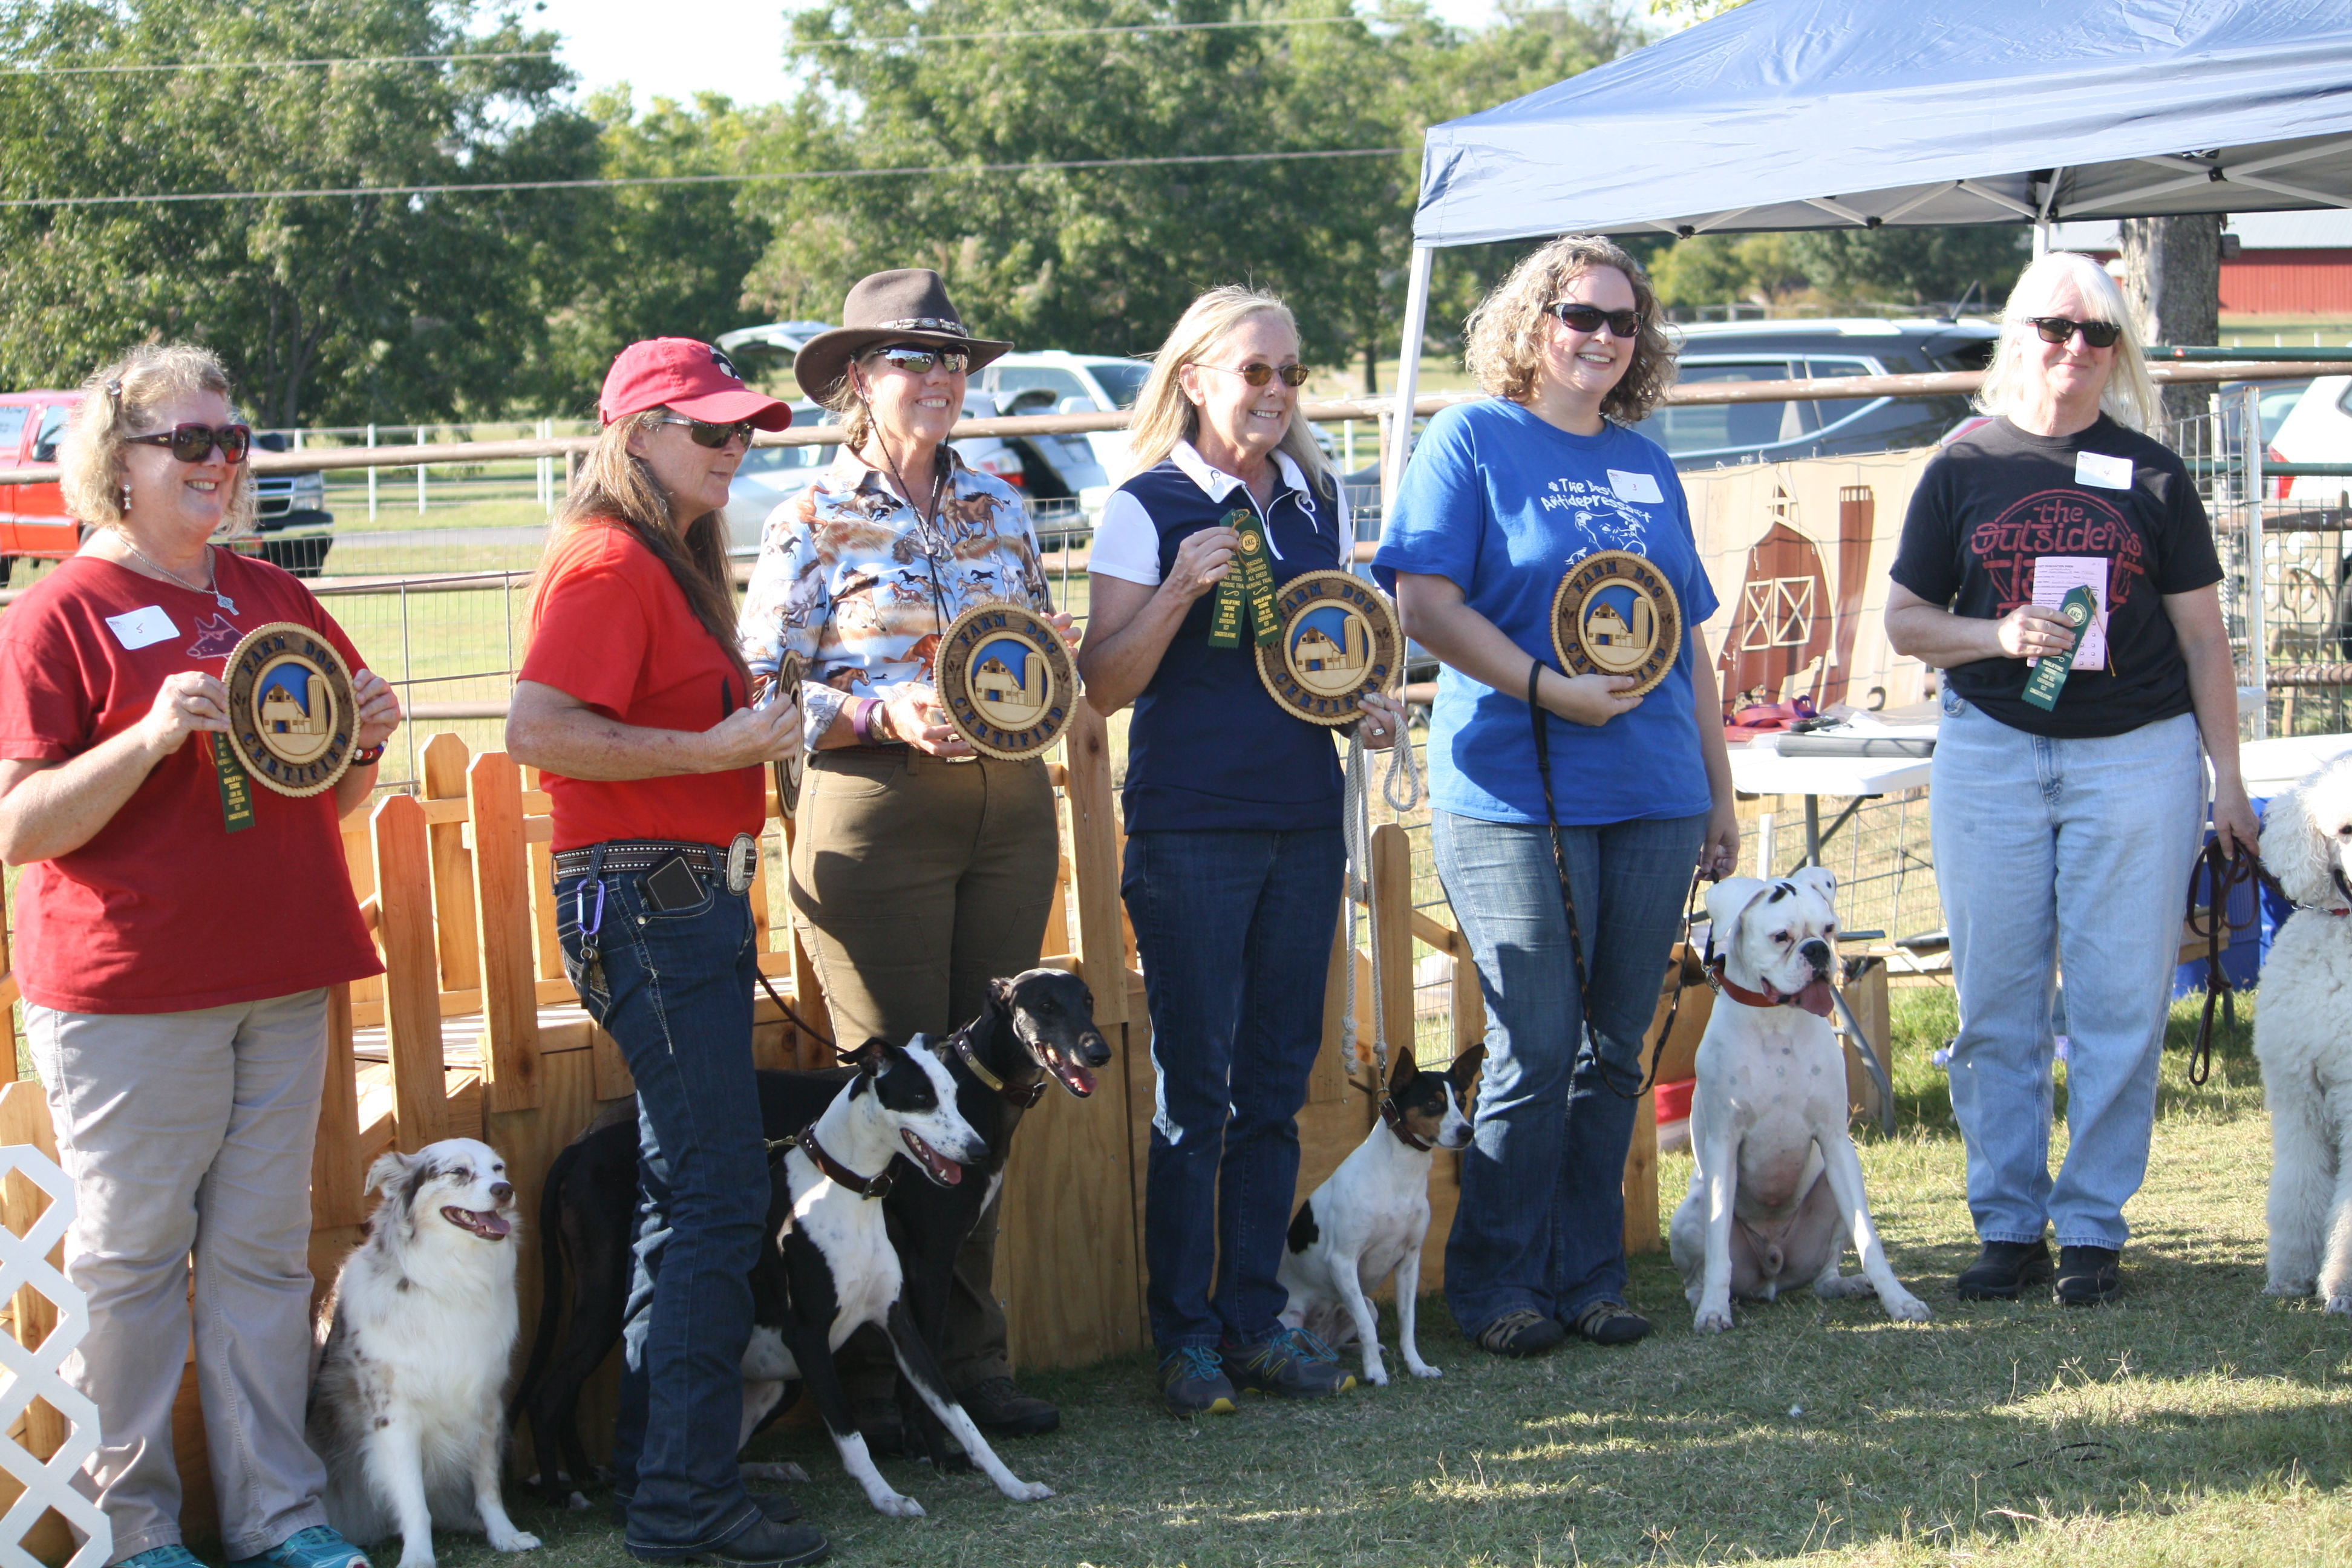 Handlers pose with Certified Farm Dogs